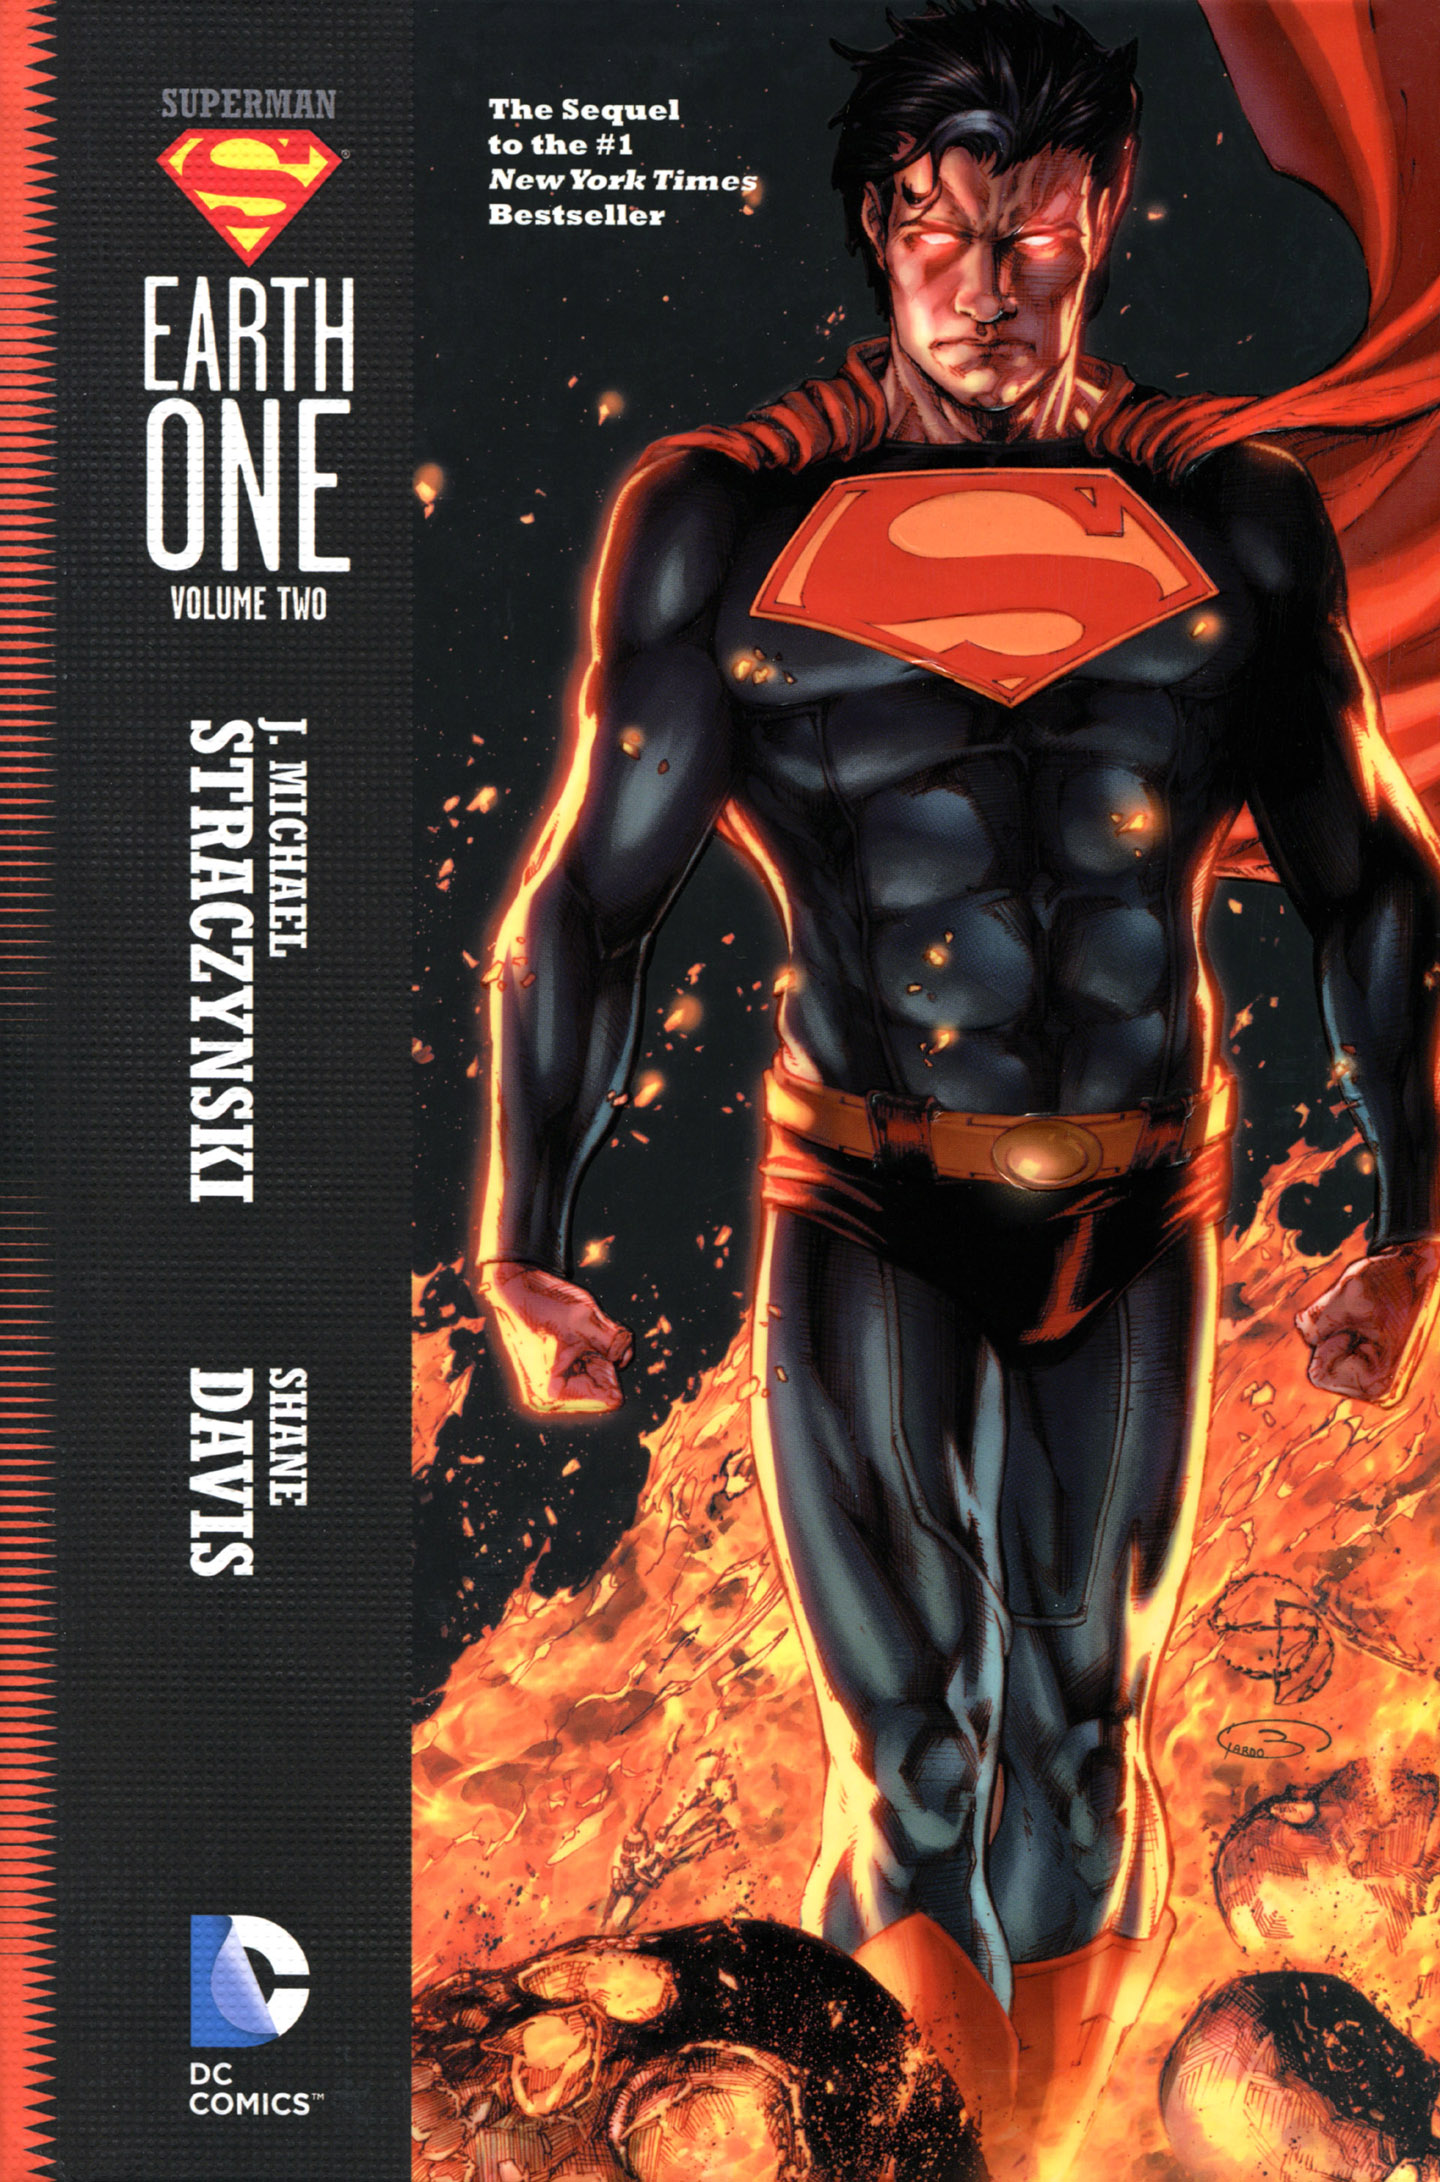 Superman Earth One Vol2 C DIAMOND announces the Top Comics in OCTOBER